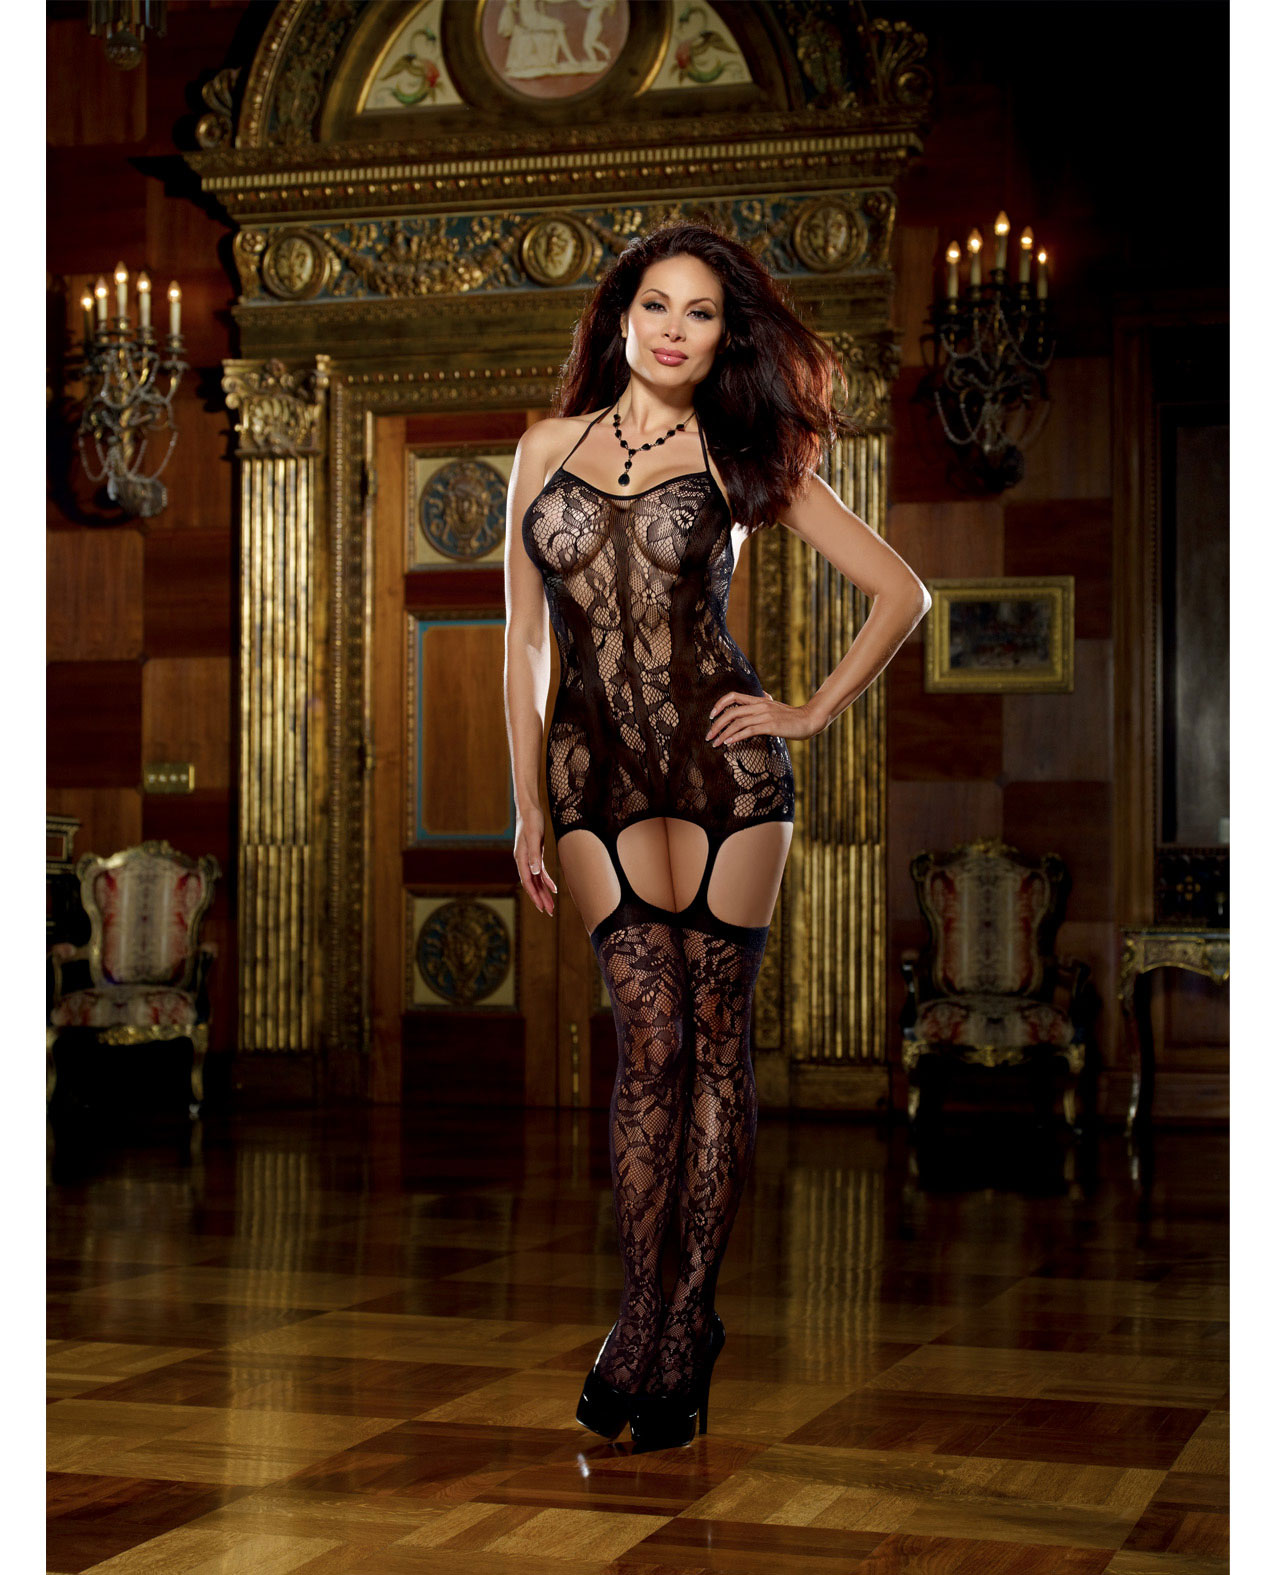 Lace Fishnet Halter Garter Dress With Attached Stockings Spicylegs Com